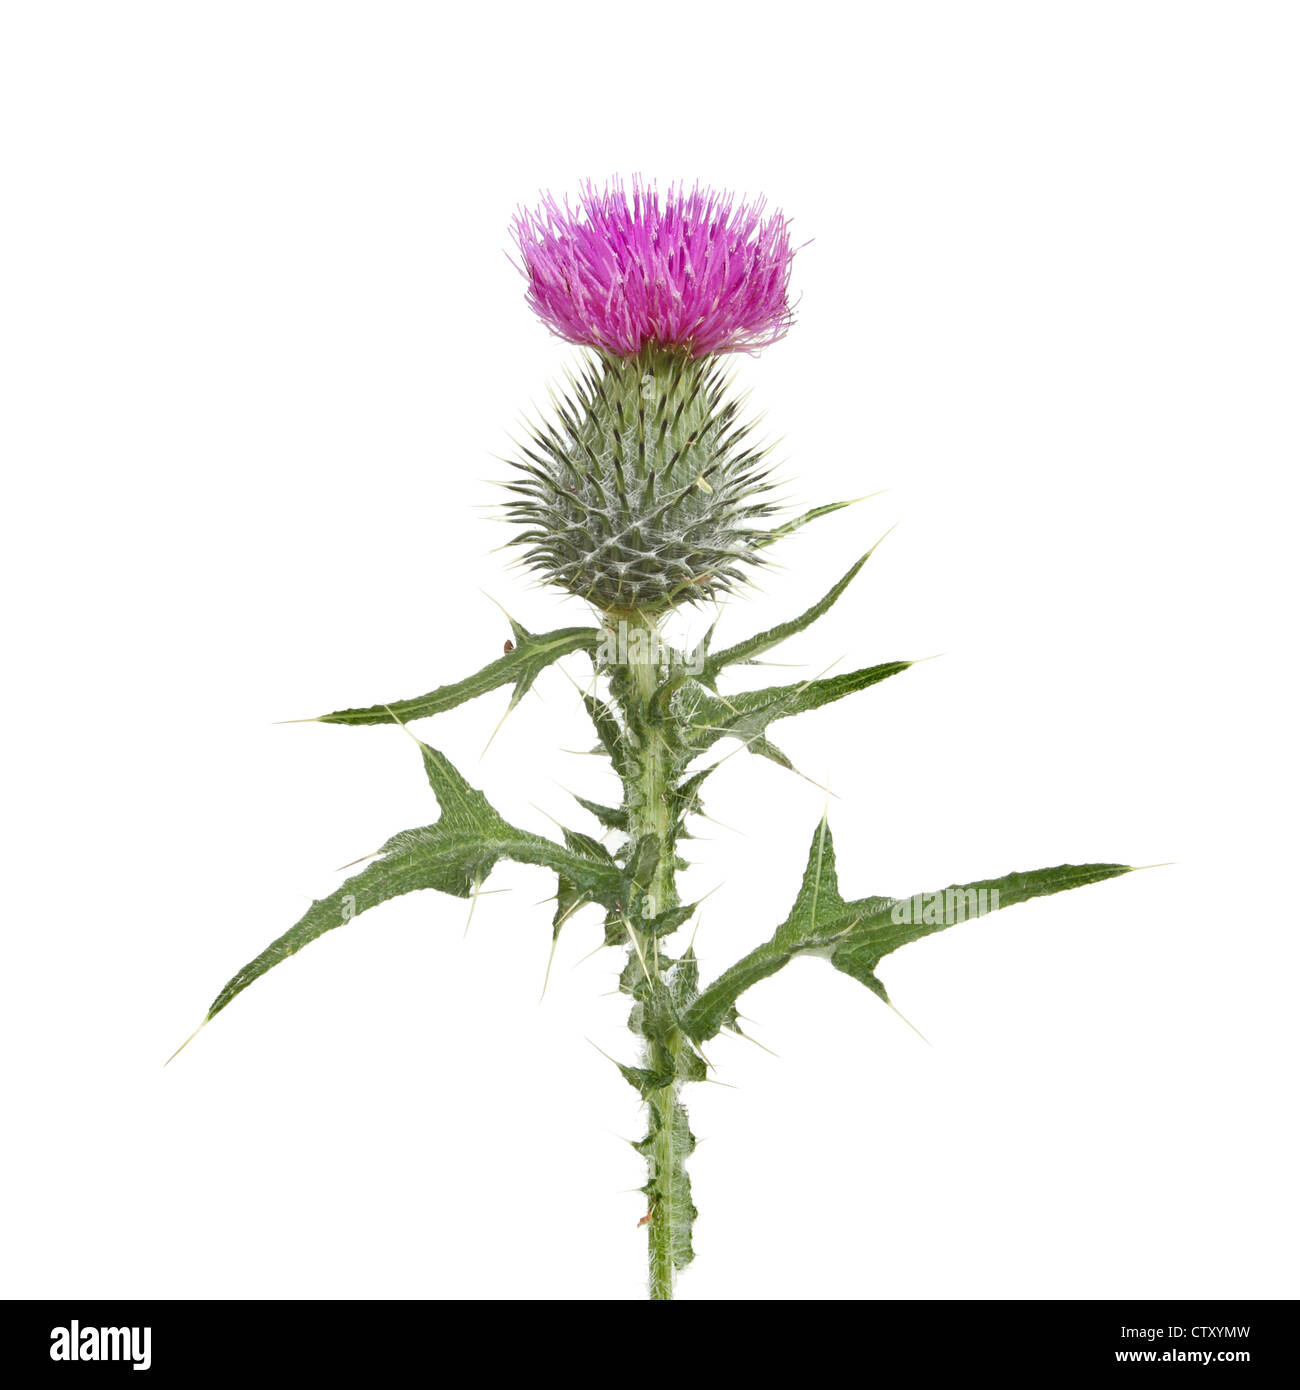 Thistle flower and leaves isolated against white - Stock Image